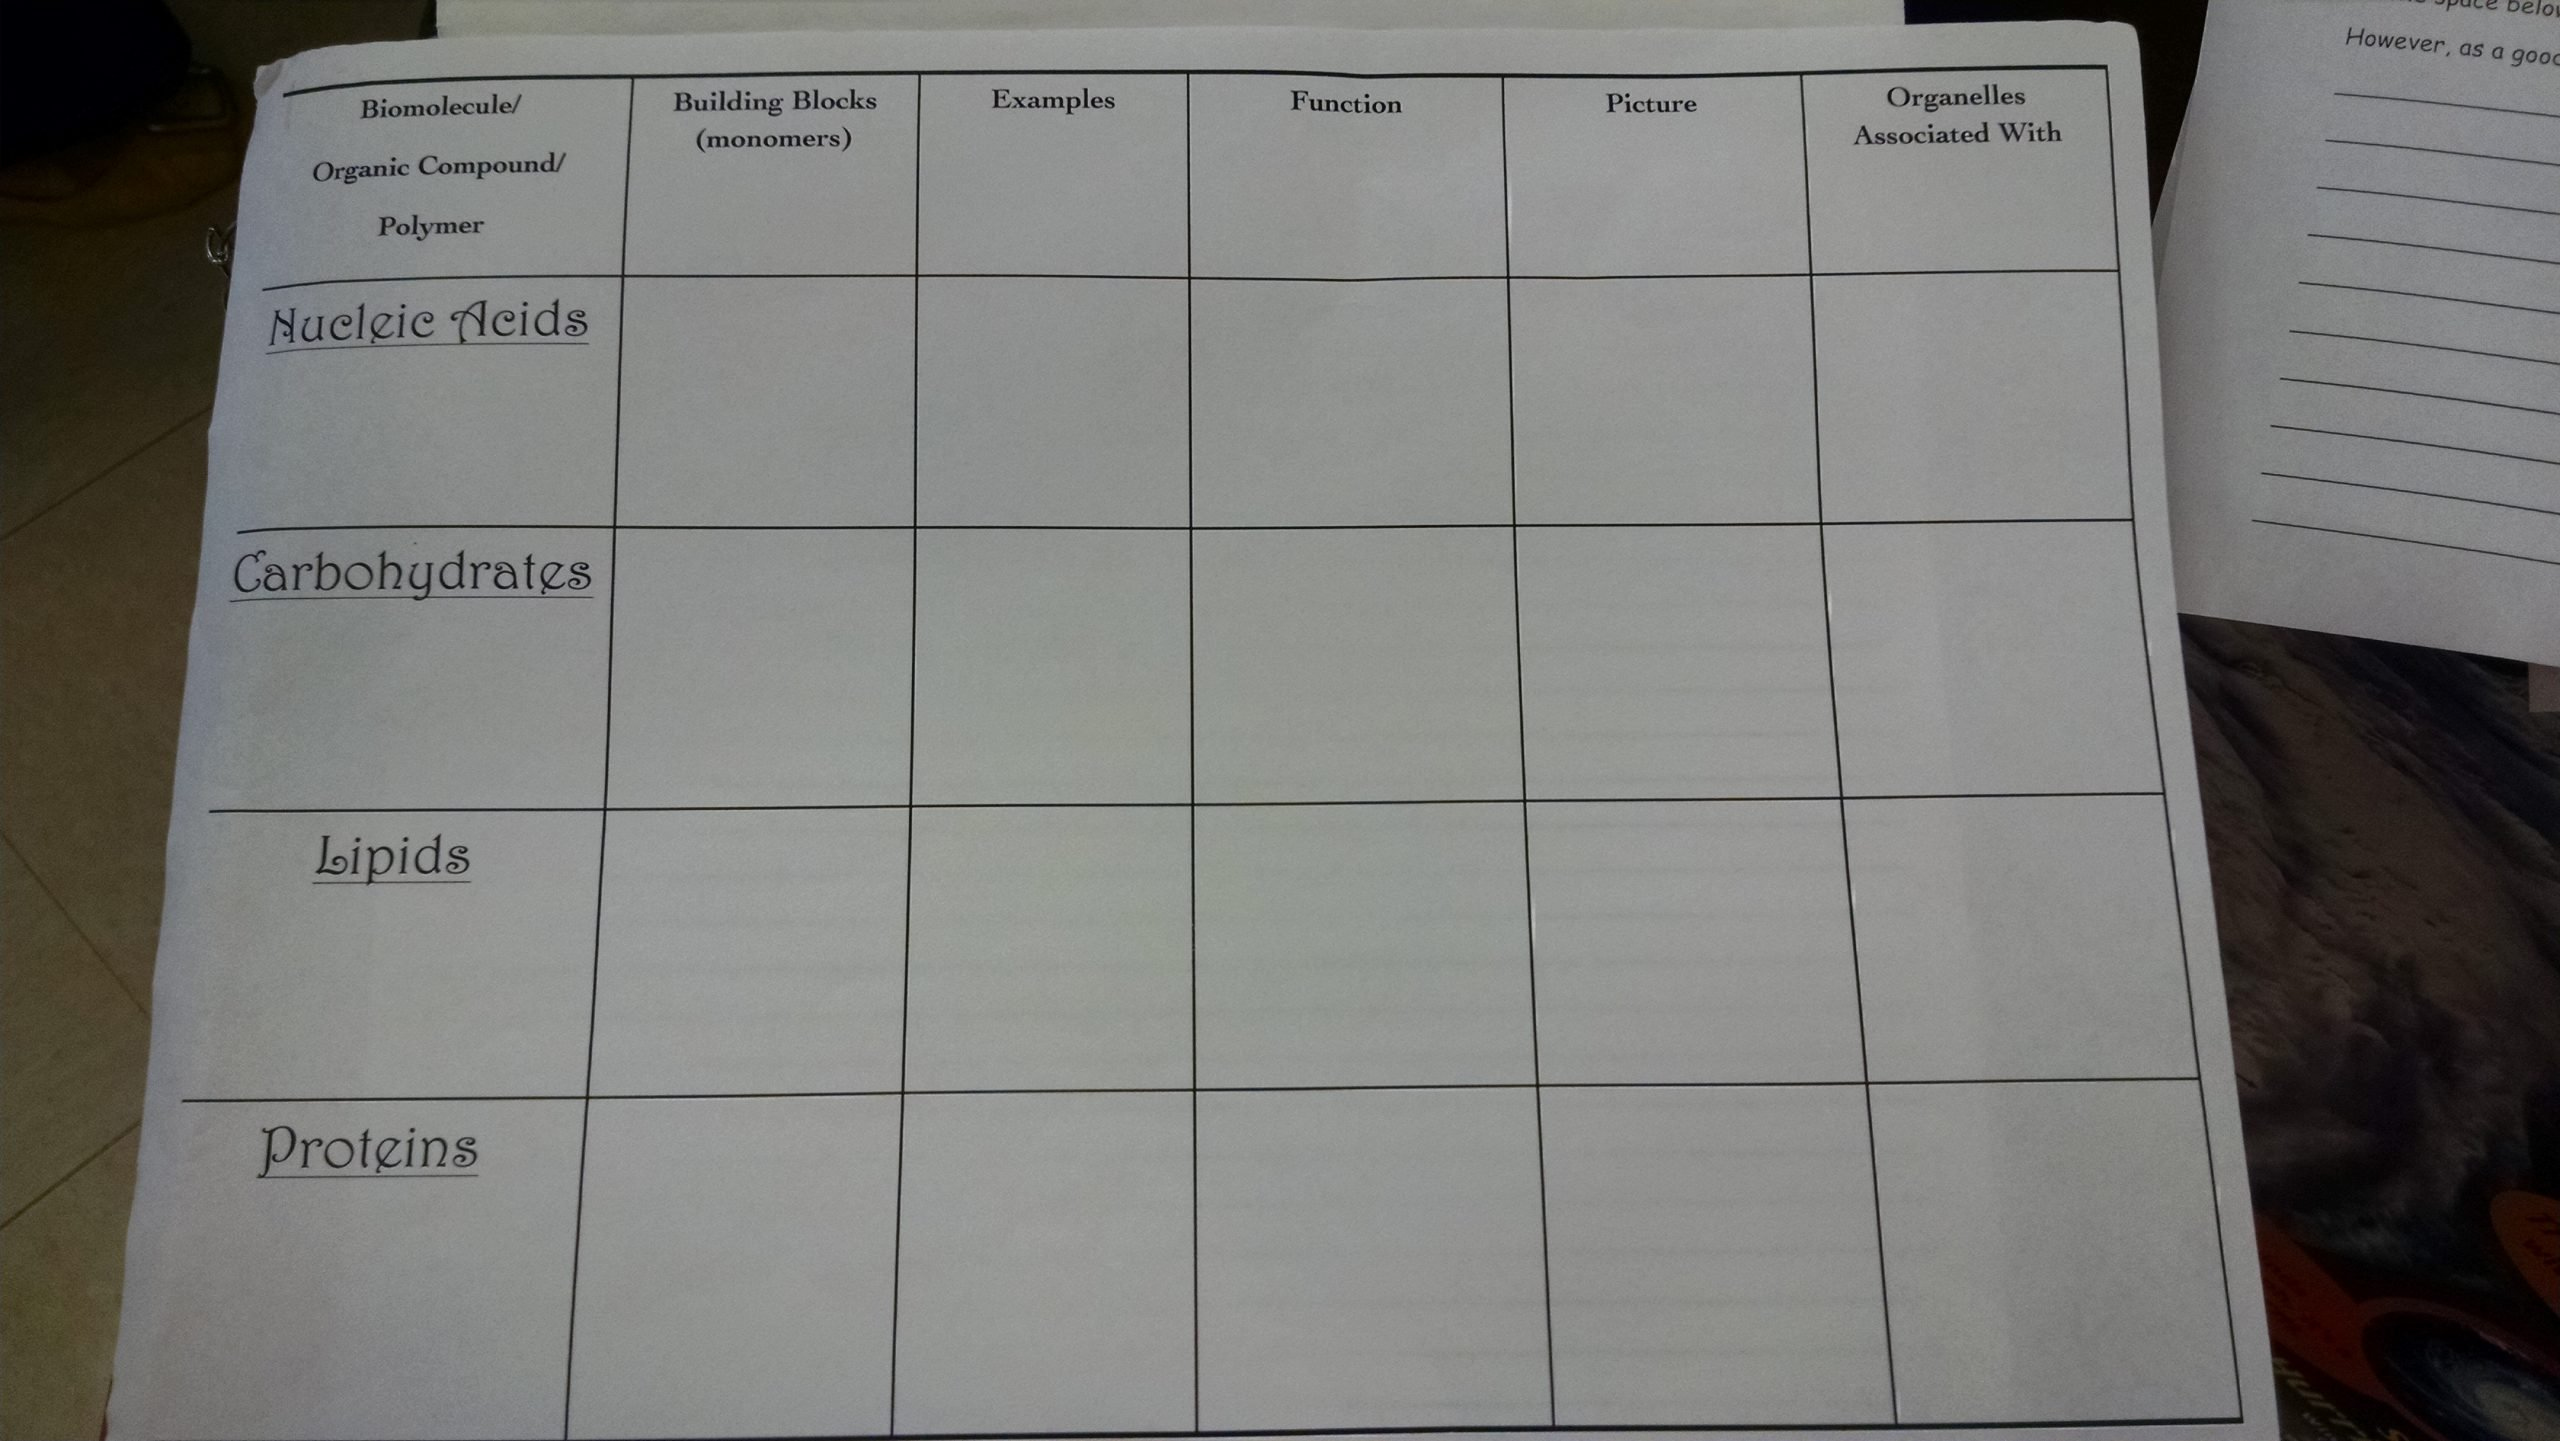 Macromolecule Comparison Table Worksheet Answers Agenda and Inb Mrs Hall S Science Class Brms